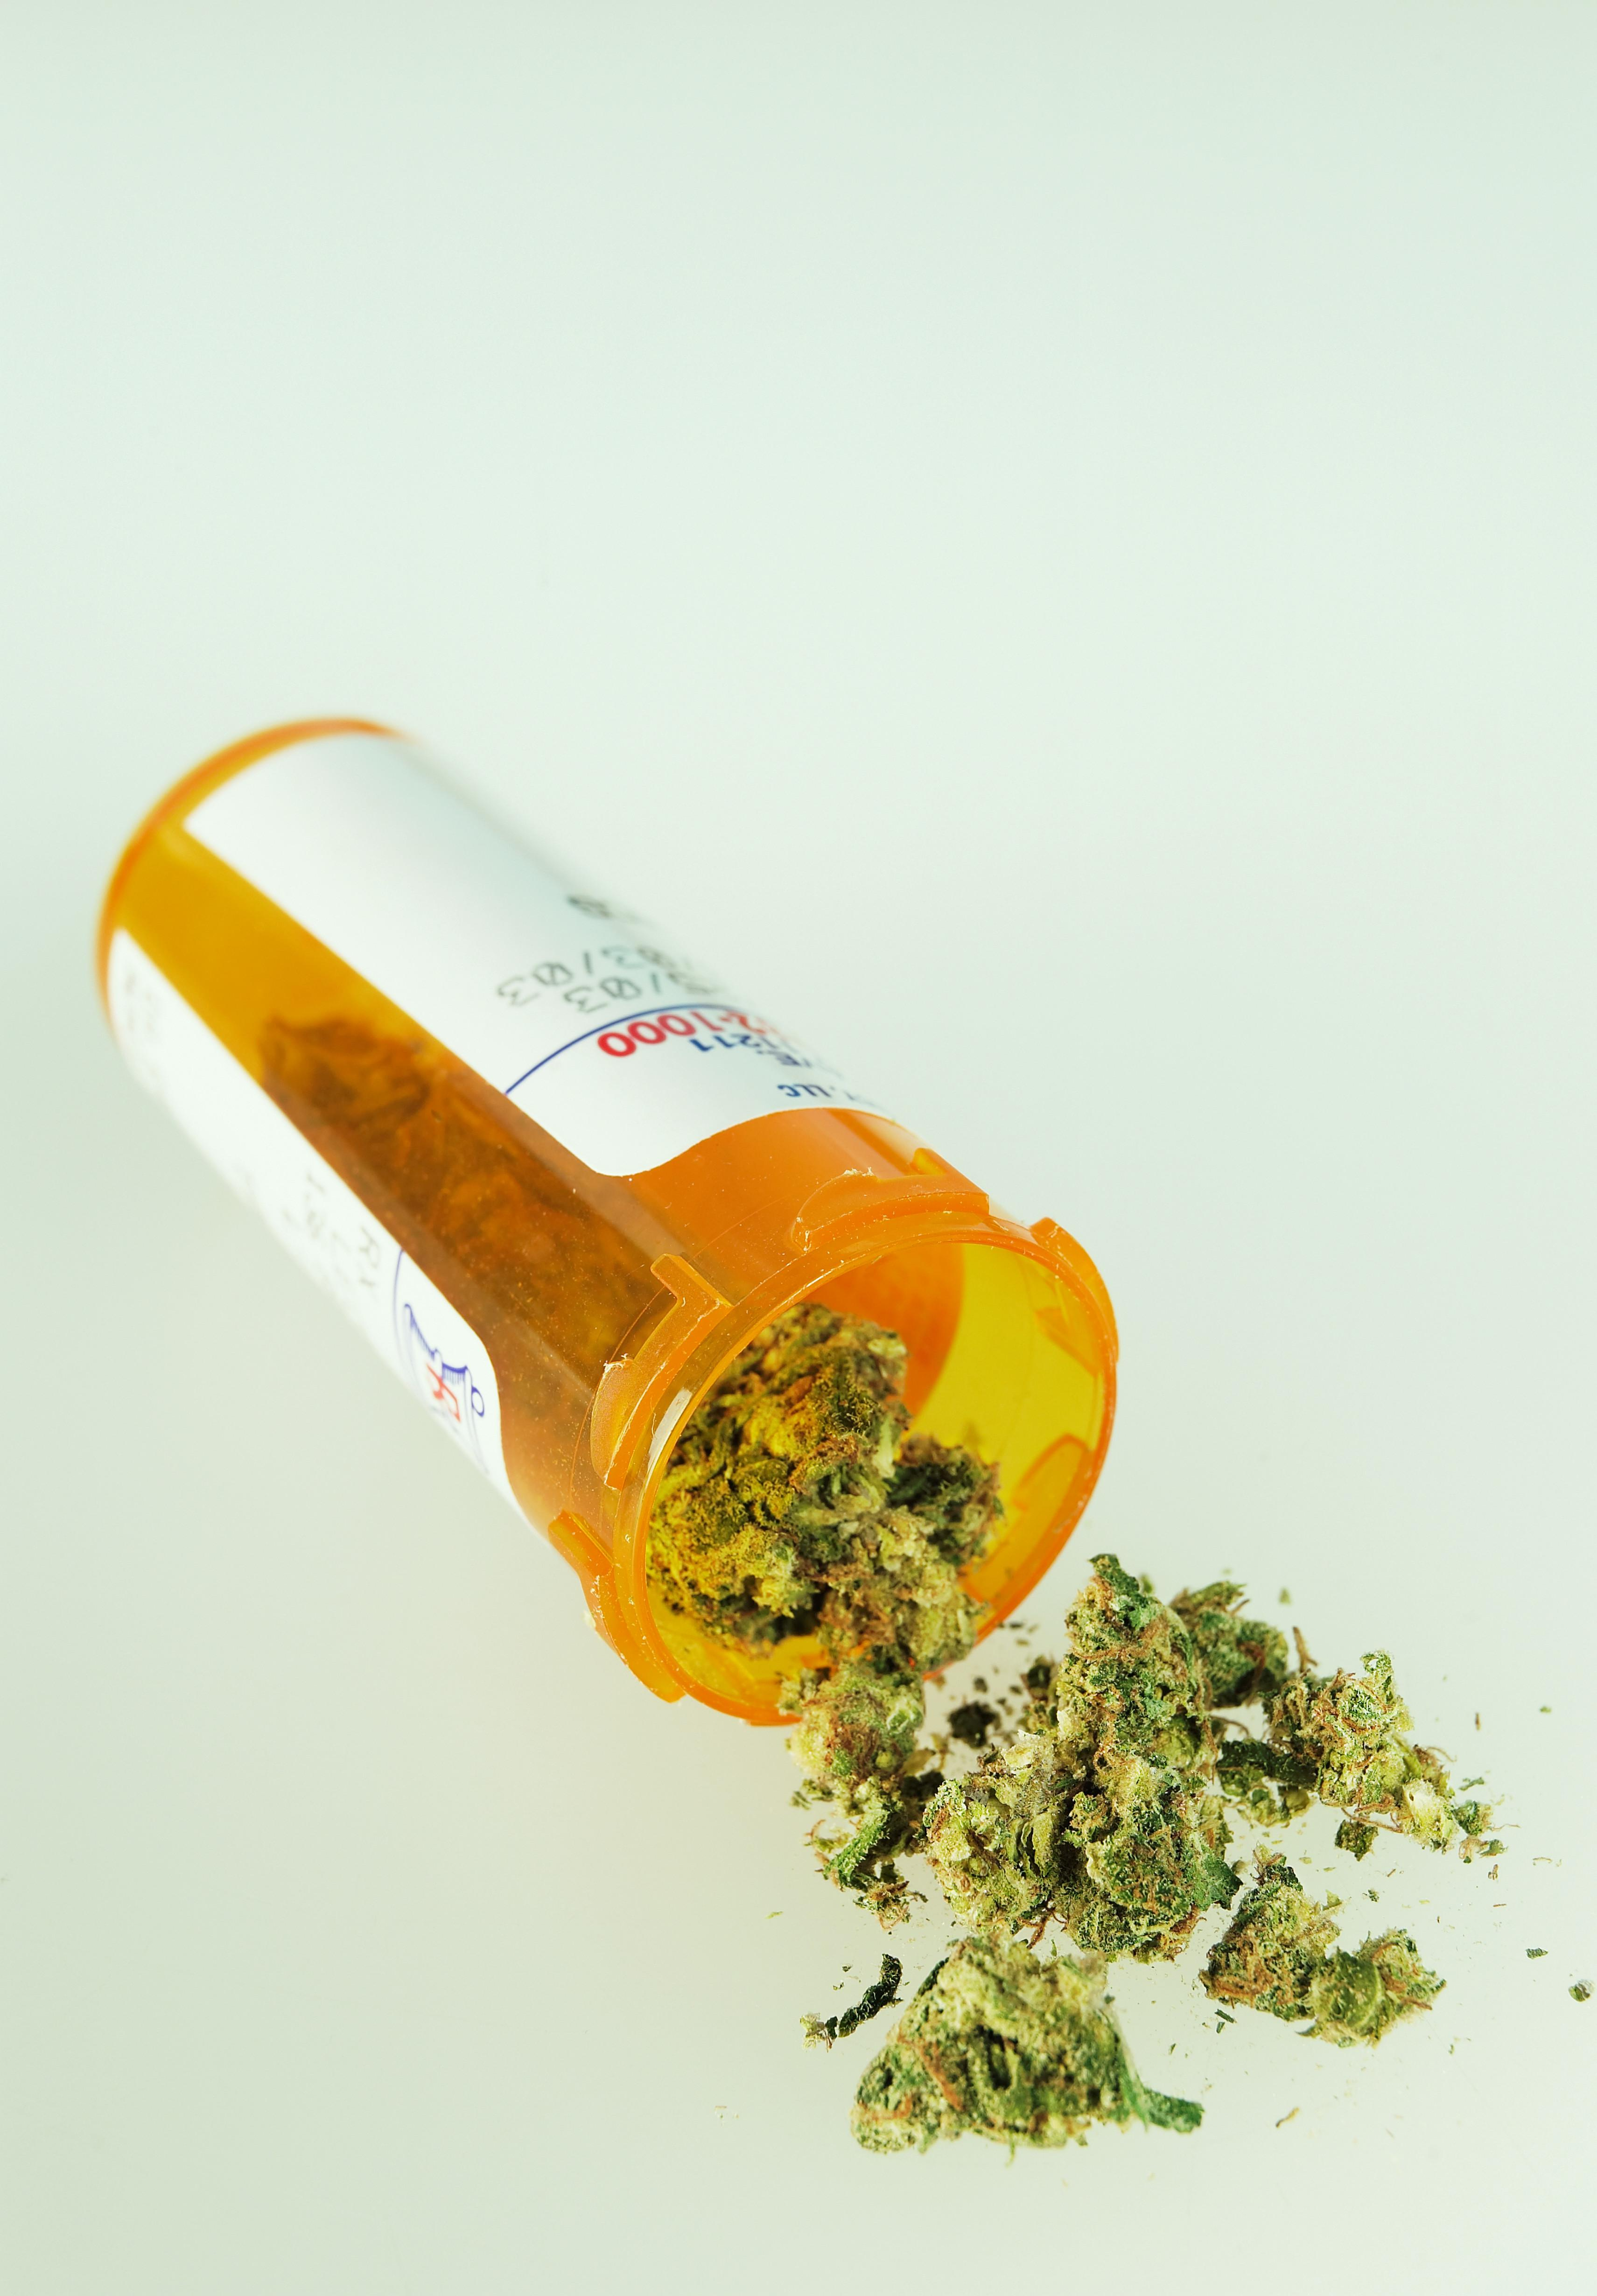 Marijuana spilling out of prescription bottle